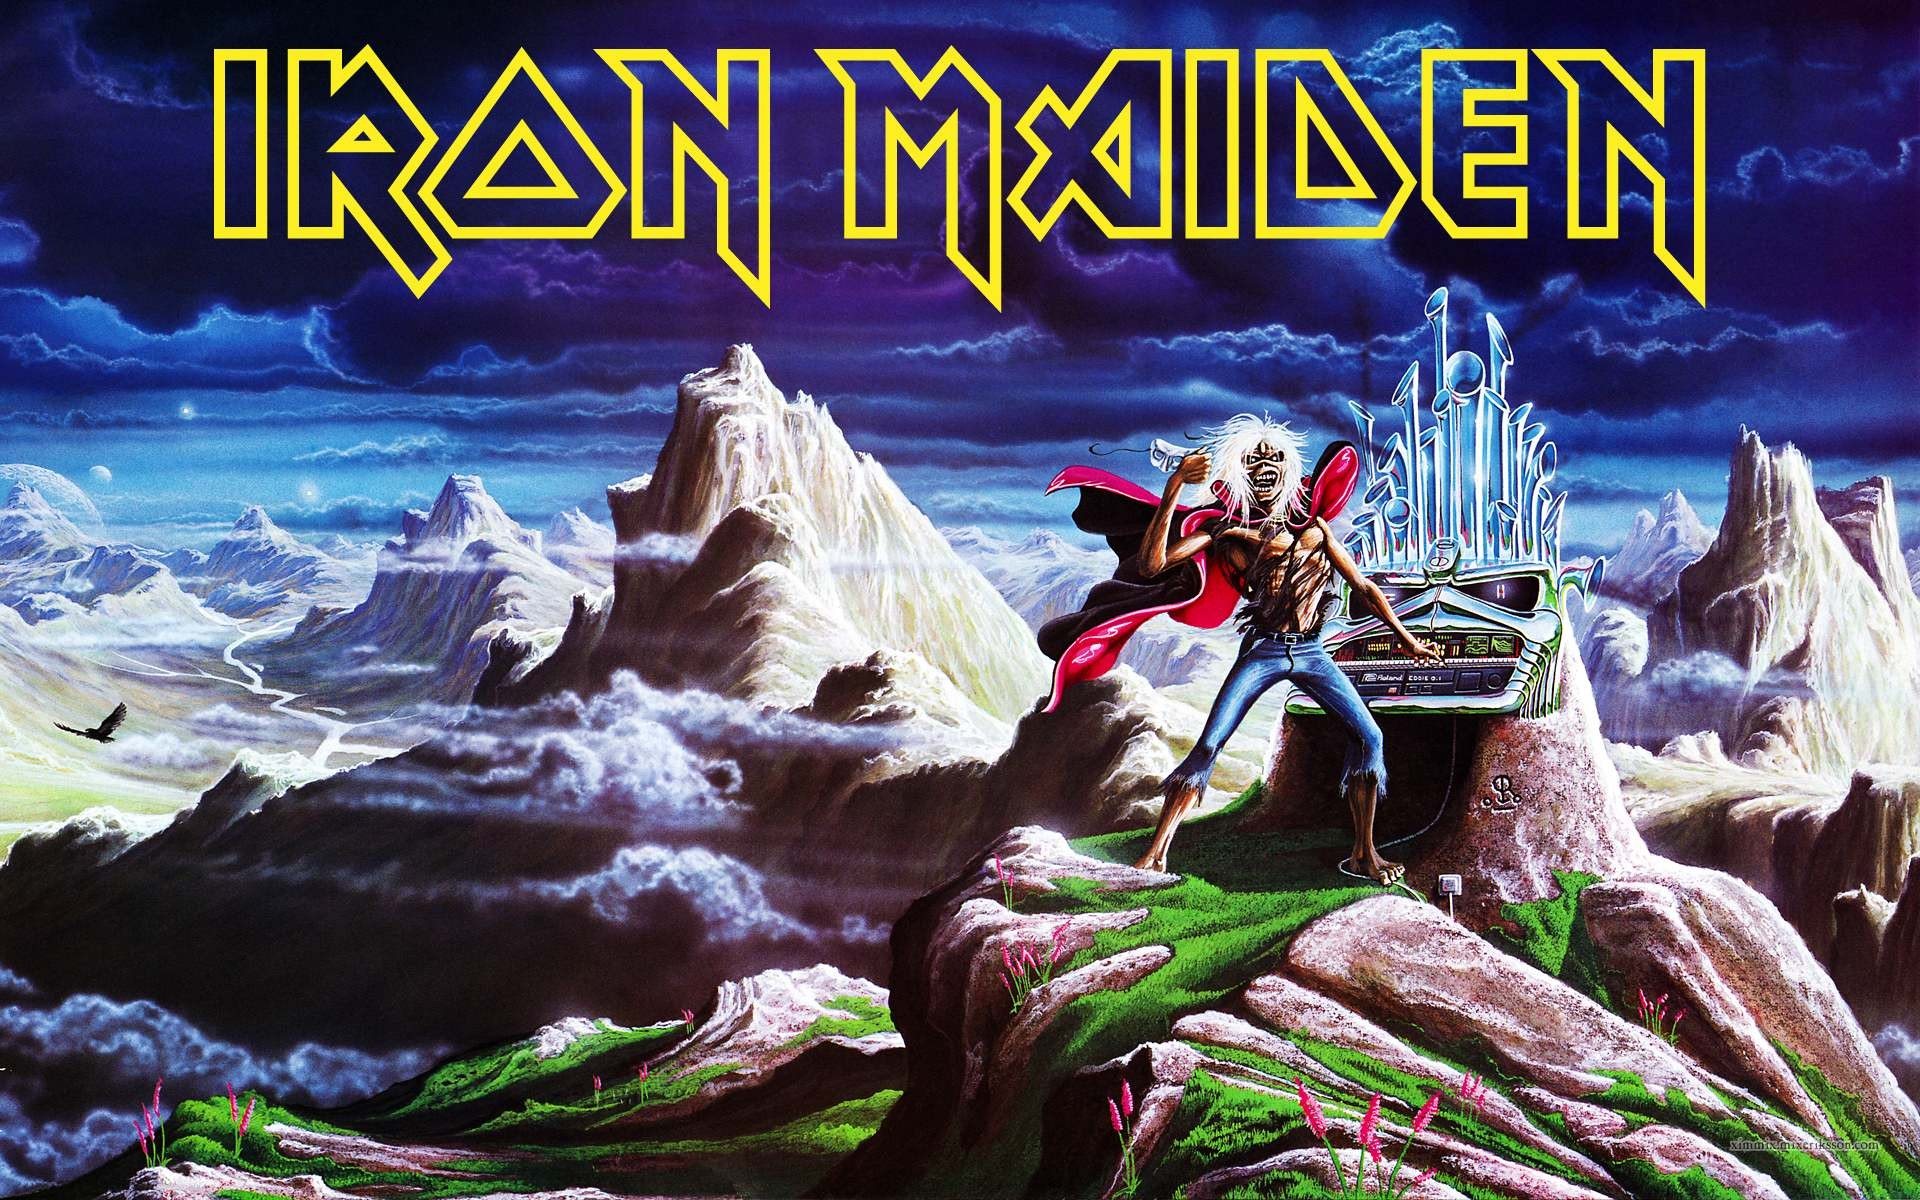 Iron Maiden Desktop Wallpaper Posted By Ethan Thompson